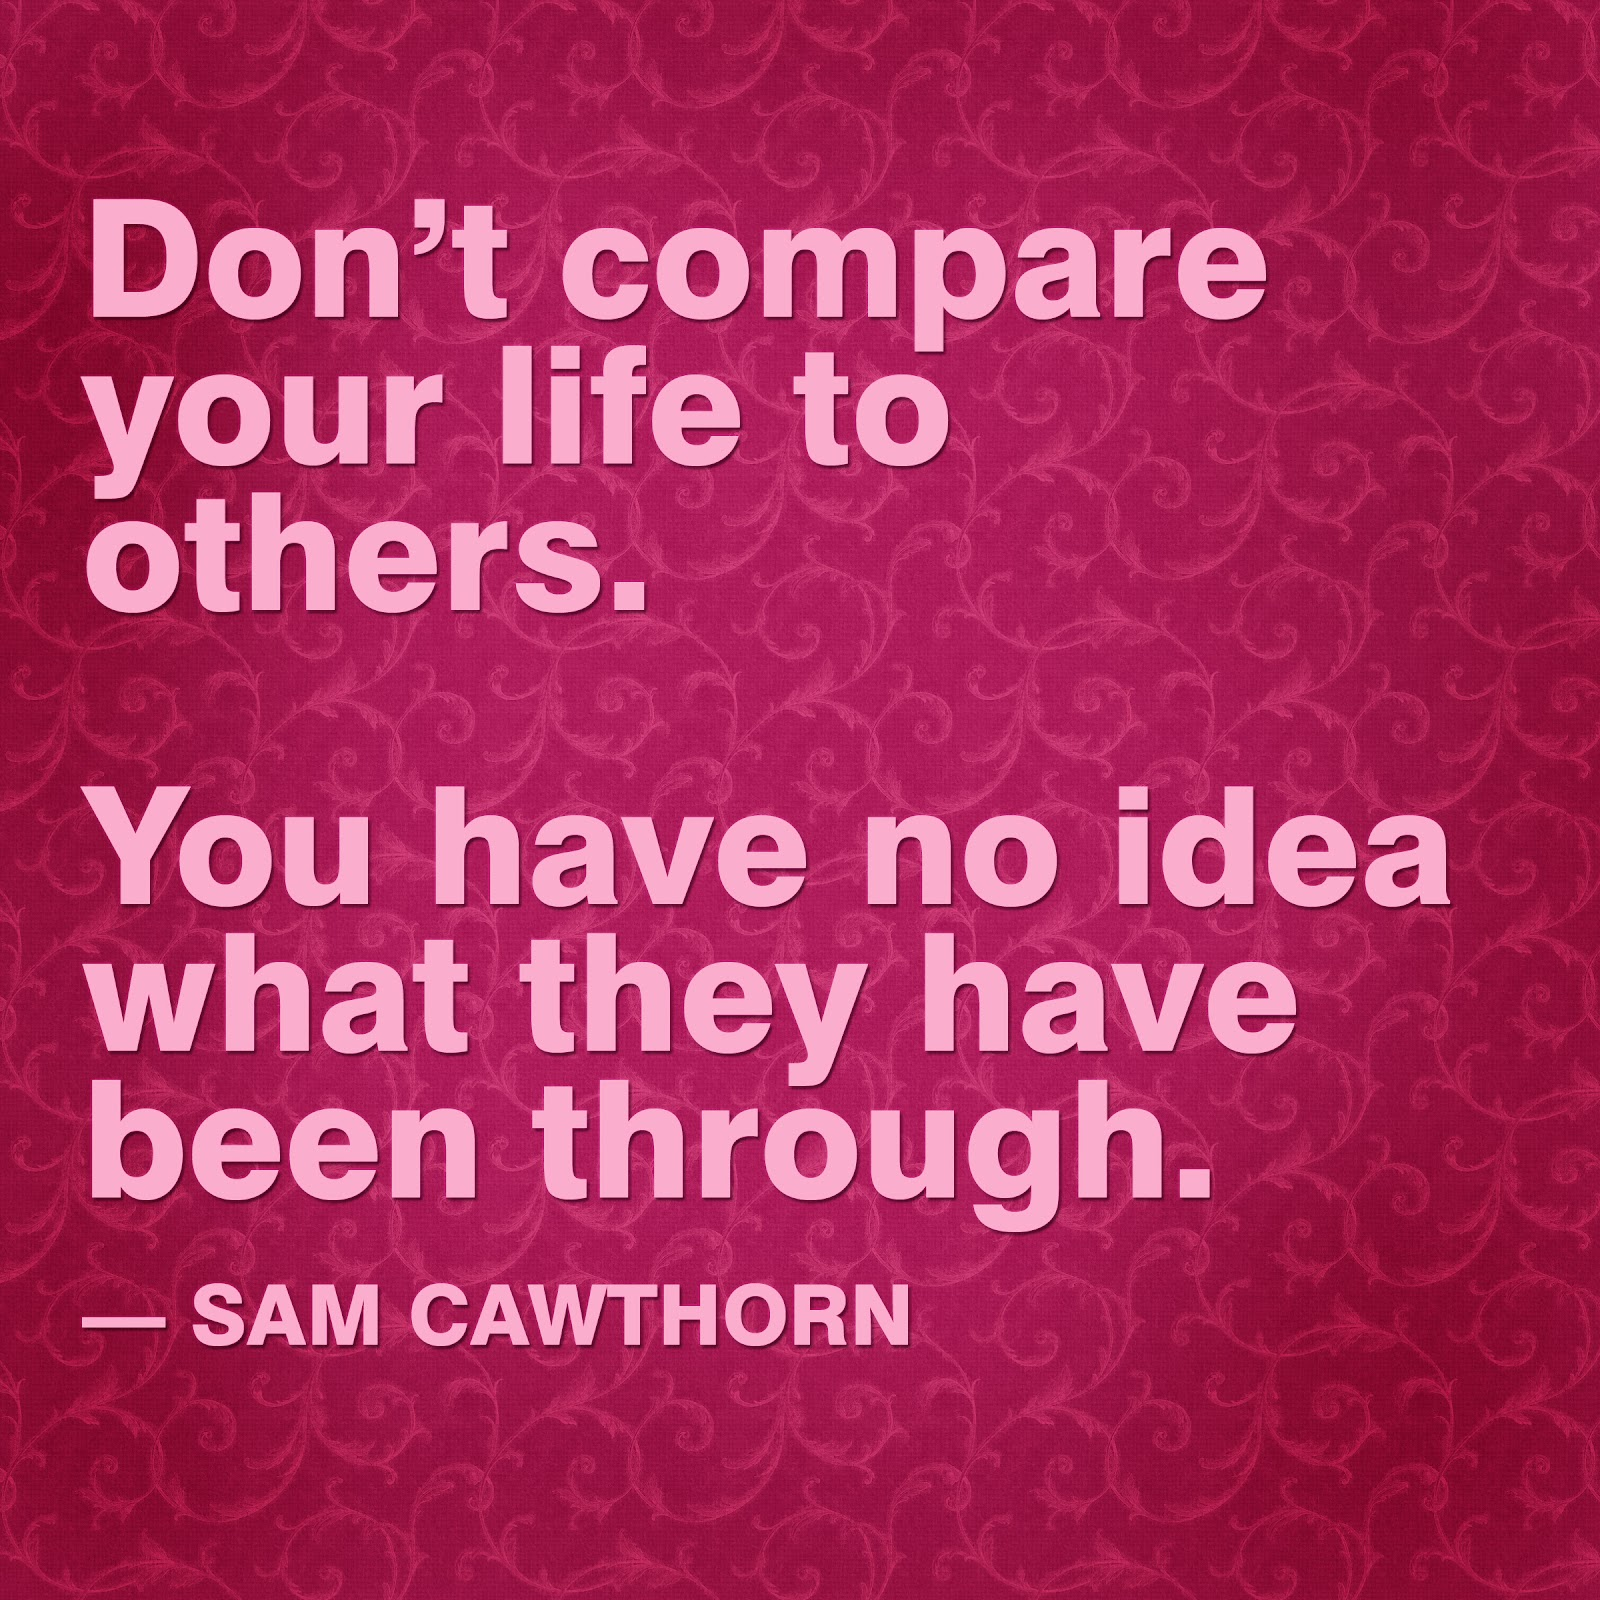 Quote Of The Day: Donu0027t Compare Your Life To Others